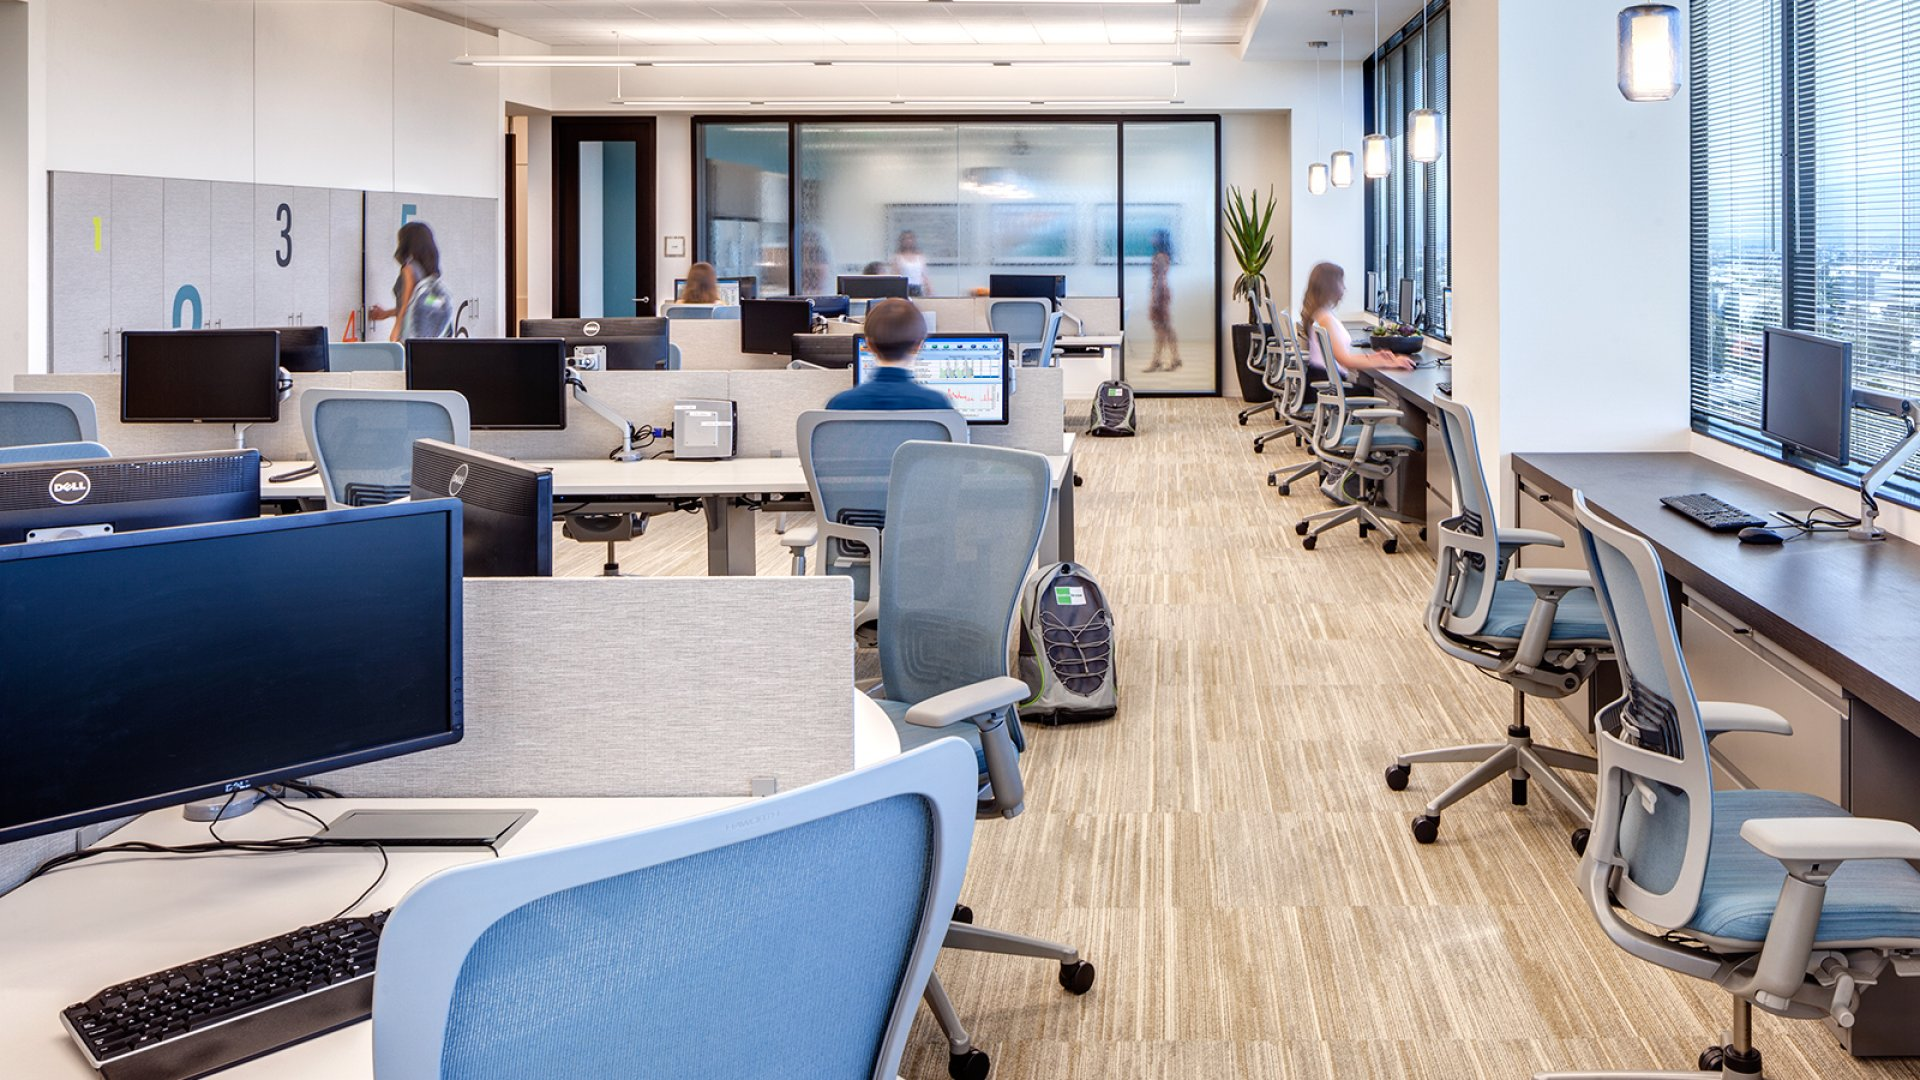 An open office H. Hendy Associates designed for the commercial real estate group Goodman.